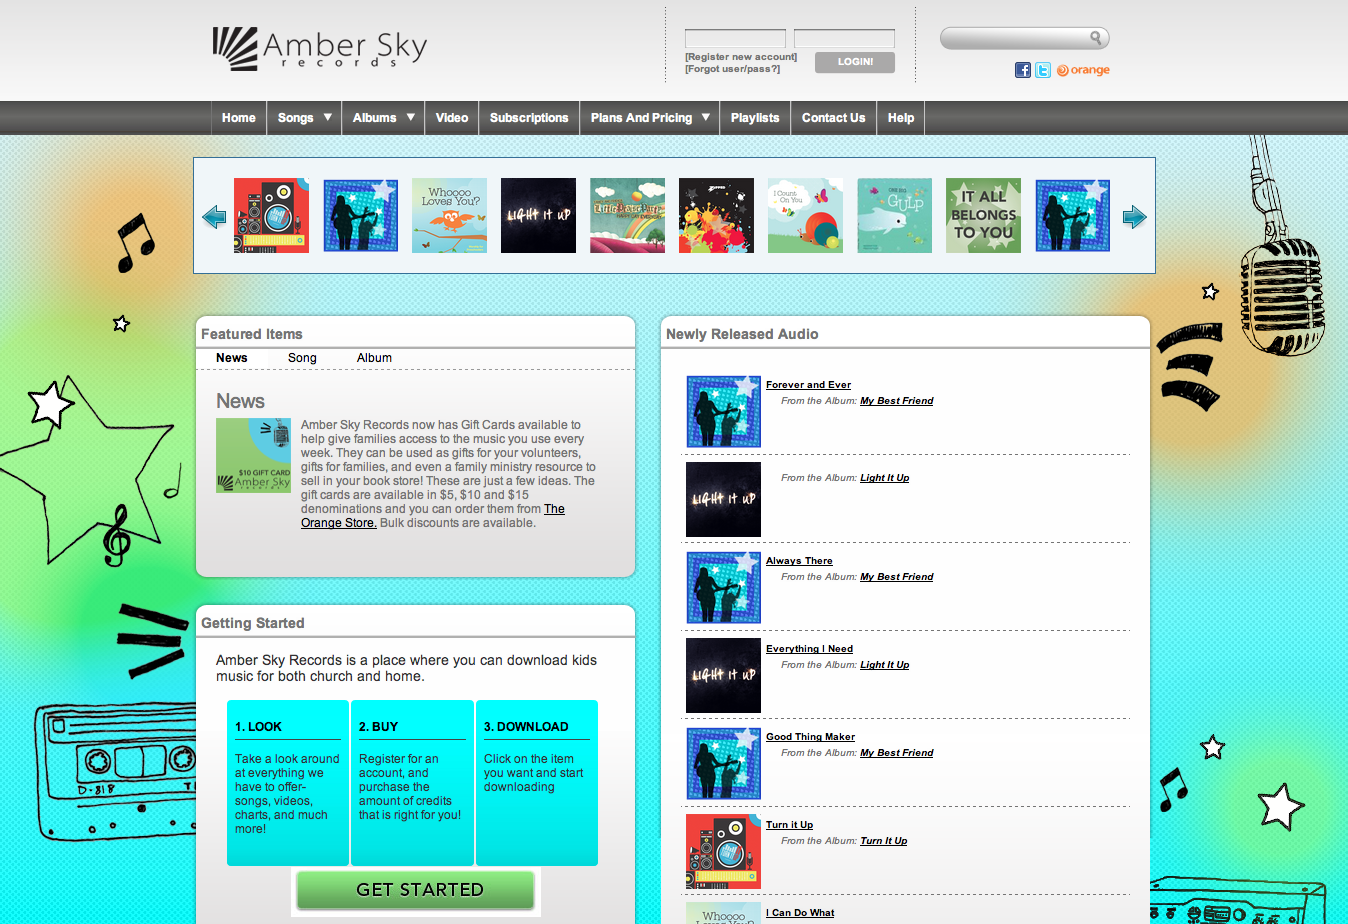 Create Playlists for Families!